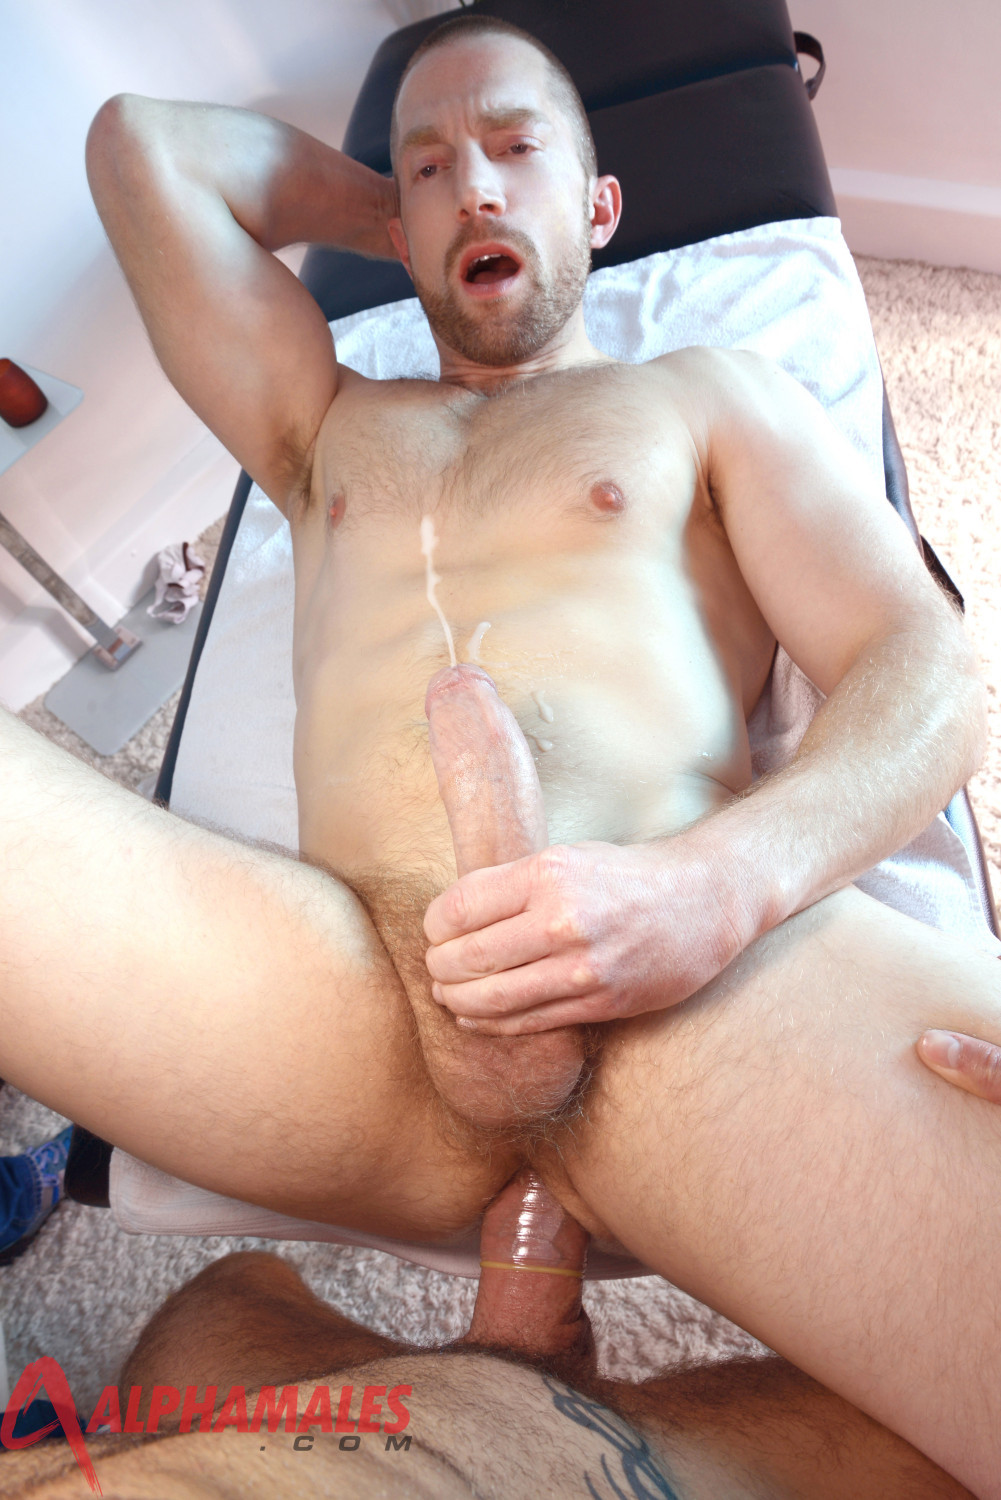 AlphaMales-Leo-Domenico-and-Adam-Herst-huge-beefy-guys-fucking-with-big-cocks-Amateur-Gay-Porn-09 Amateur Hung Guy Gets Fucked By His Big Cock Massage Therapist